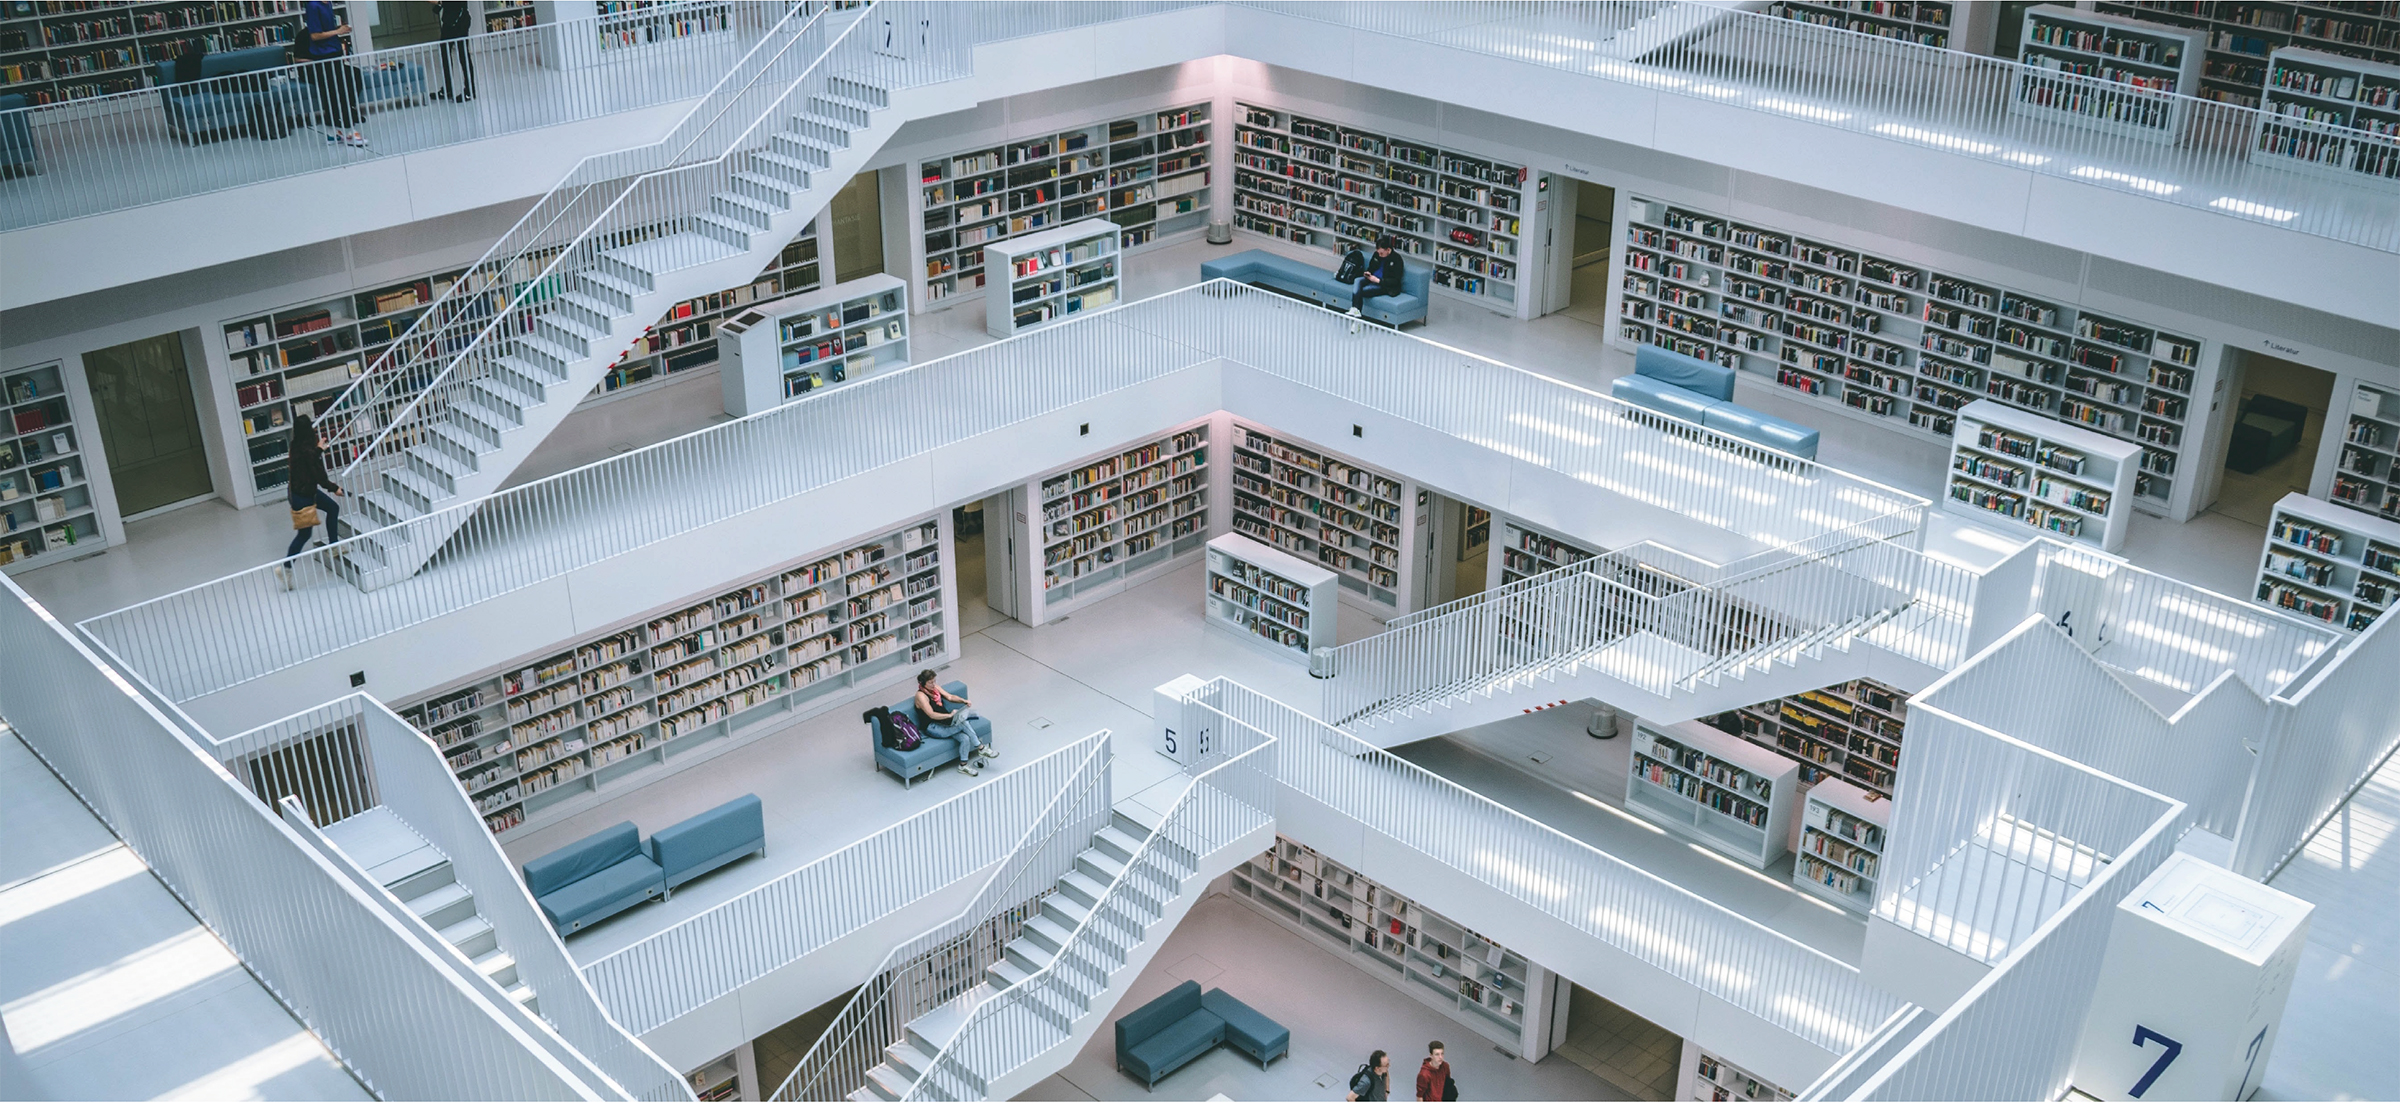 Staircases and book shelves with some people sitting down or walking